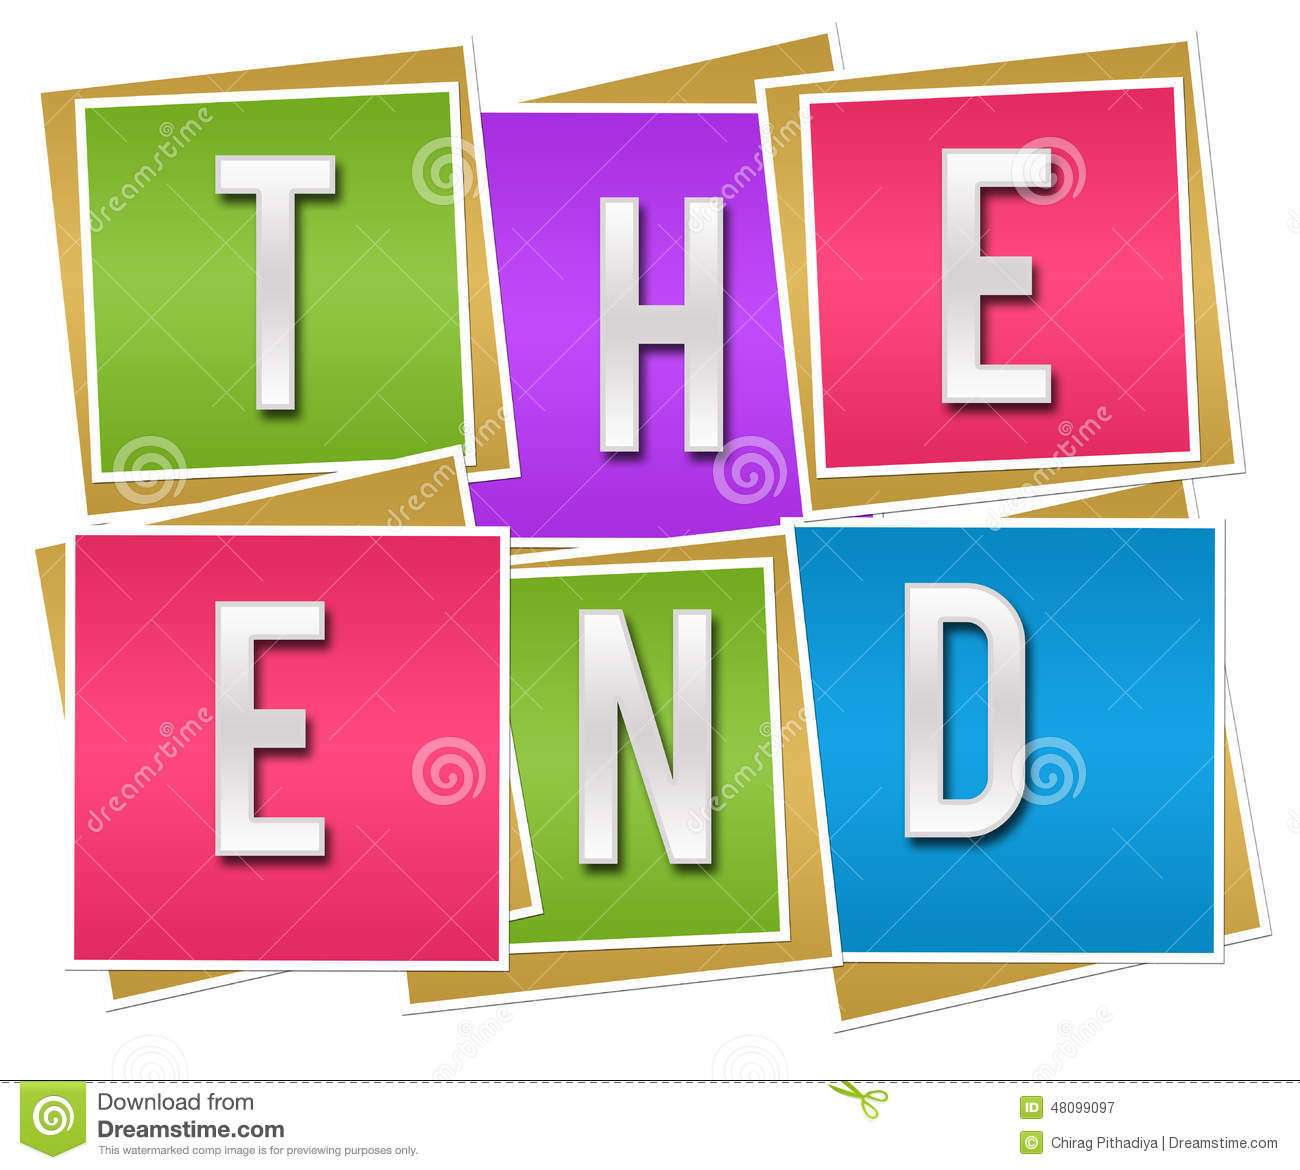 The End Colorful Blocks Stock Illustration - Image: 48099097